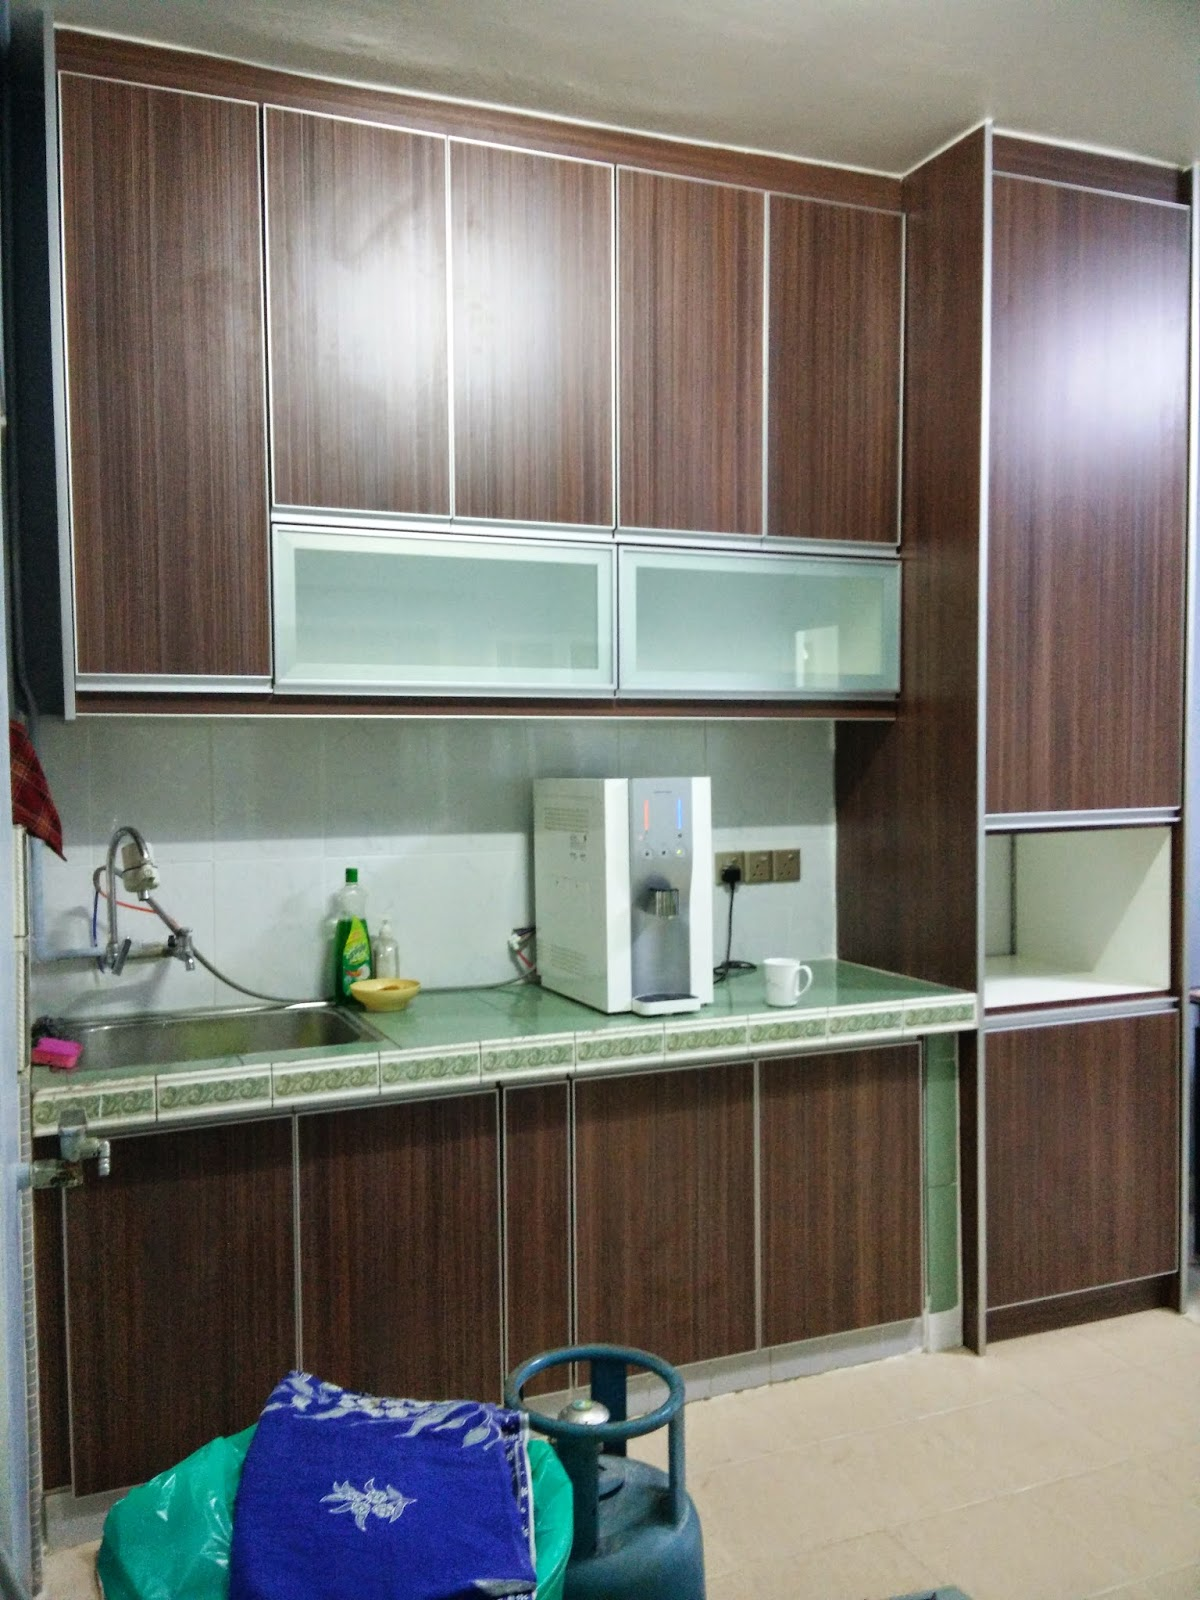 Dapur Suria Sains Desainrumahid Kitchen Cabinet Baru Basah Selepas Renovation My First Blog Tips Renovate Make Over Inium Kecil